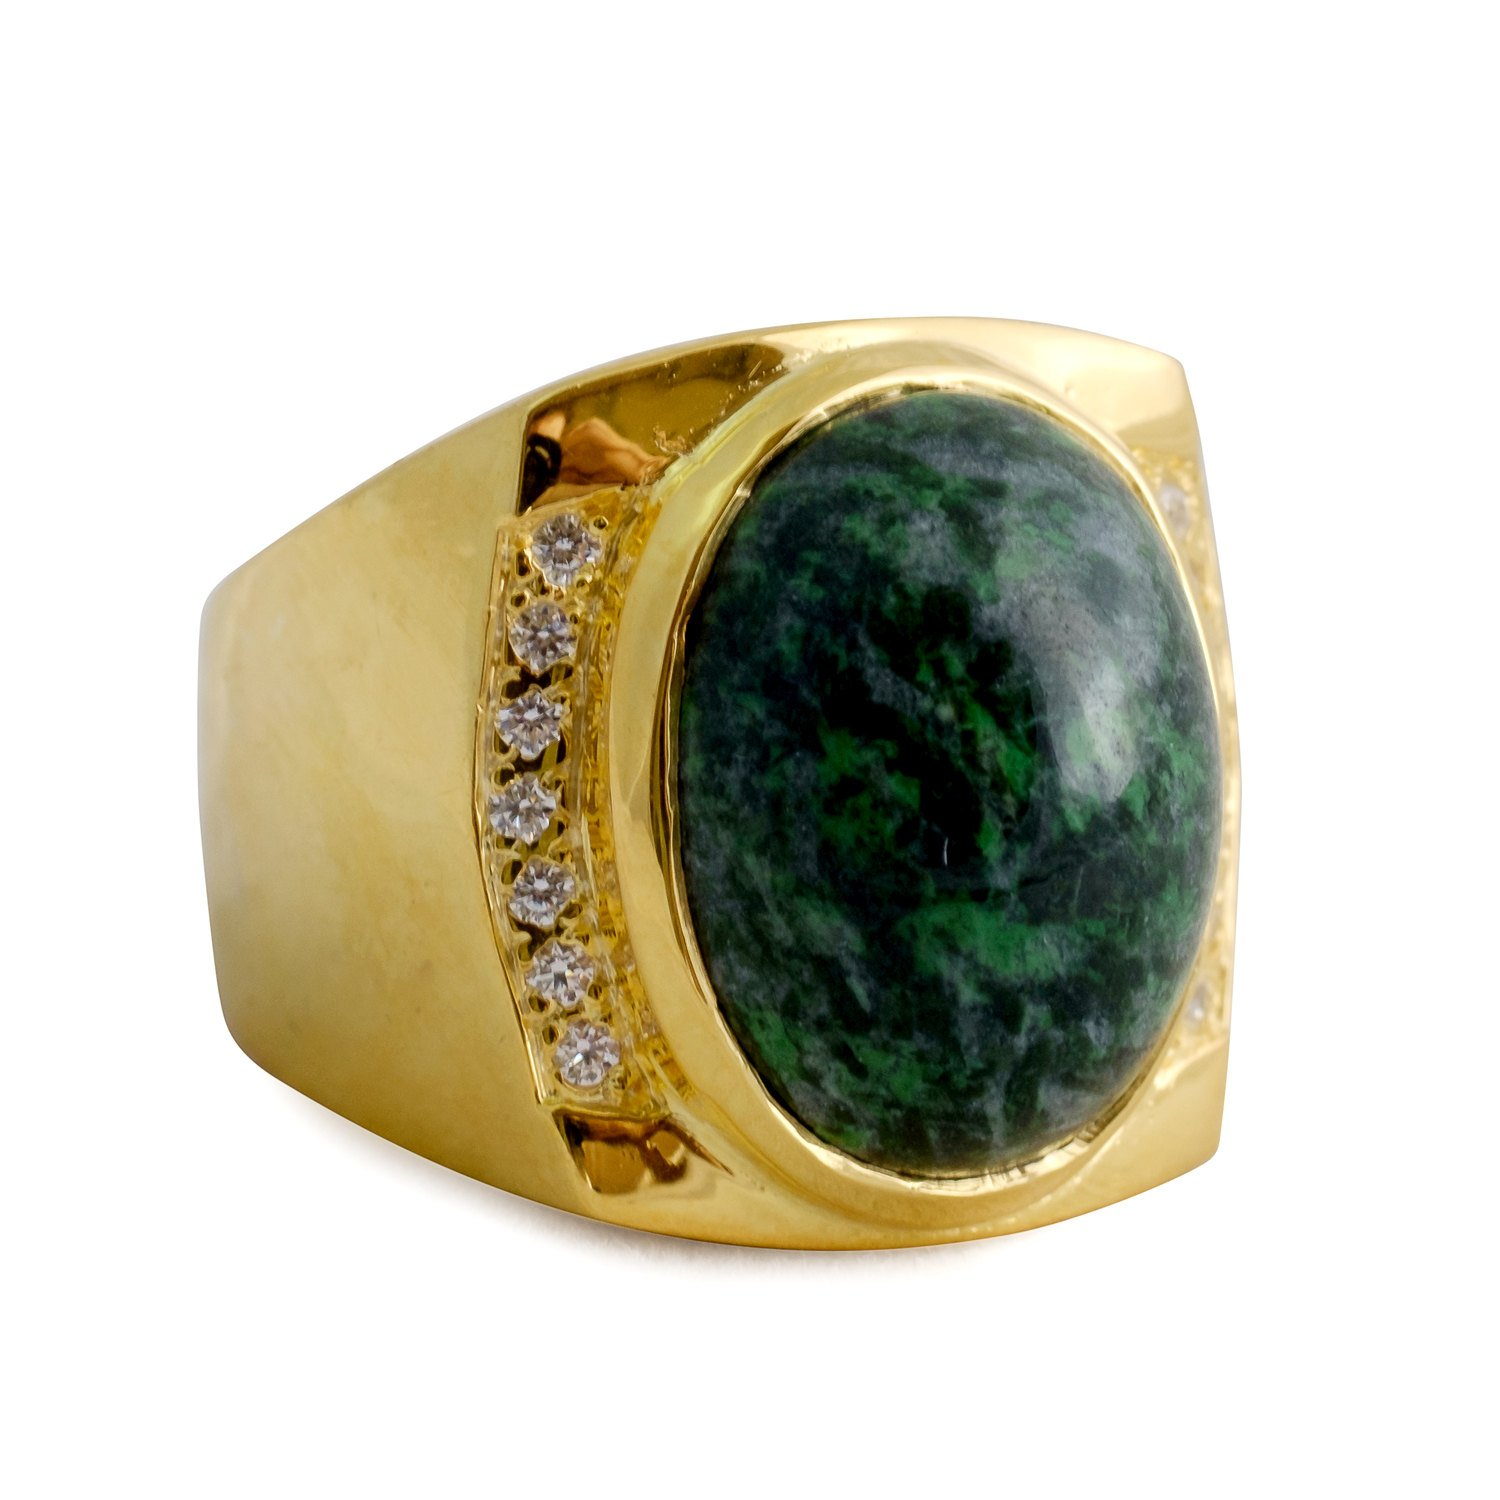 Jade zircons ring - Regnas Jewelry